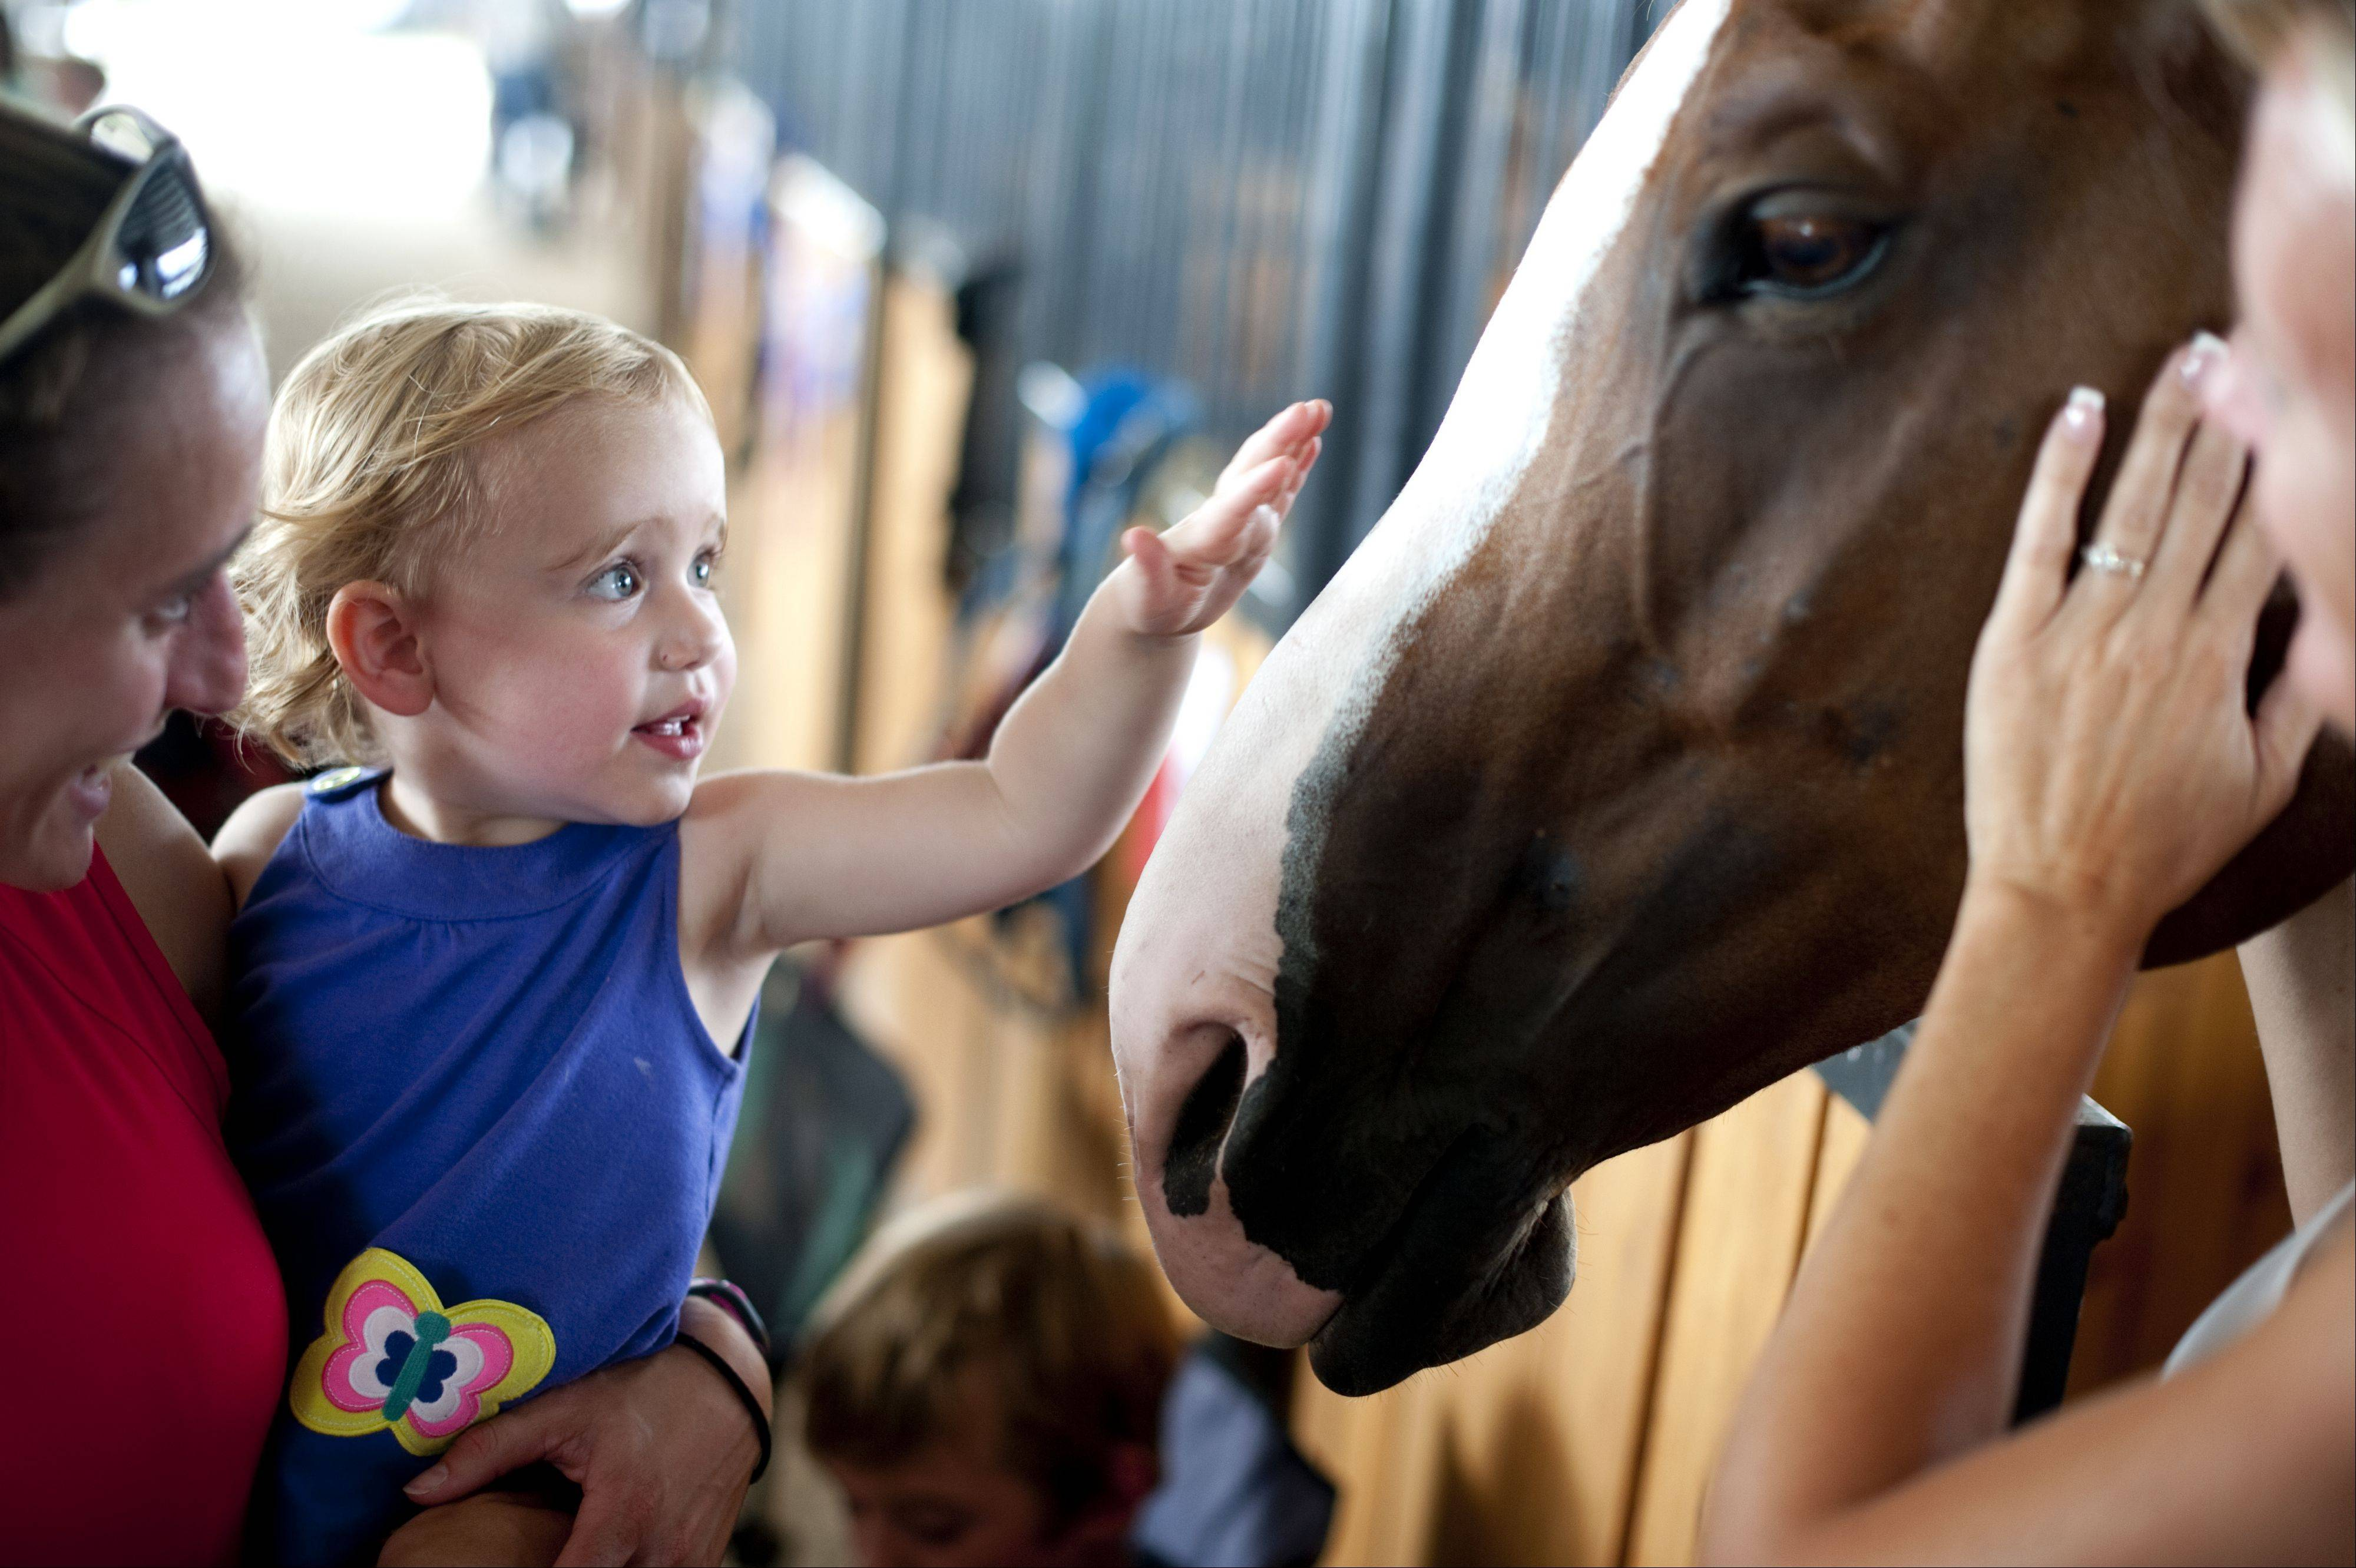 Scout Bernard, 2, of Chicago visits the horse stables at the Kane County Fair in St. Charles Saturday. Children had the opportunity to pet a variety of farm animals including horses, cows and pigs under the watch of the animals' owners.